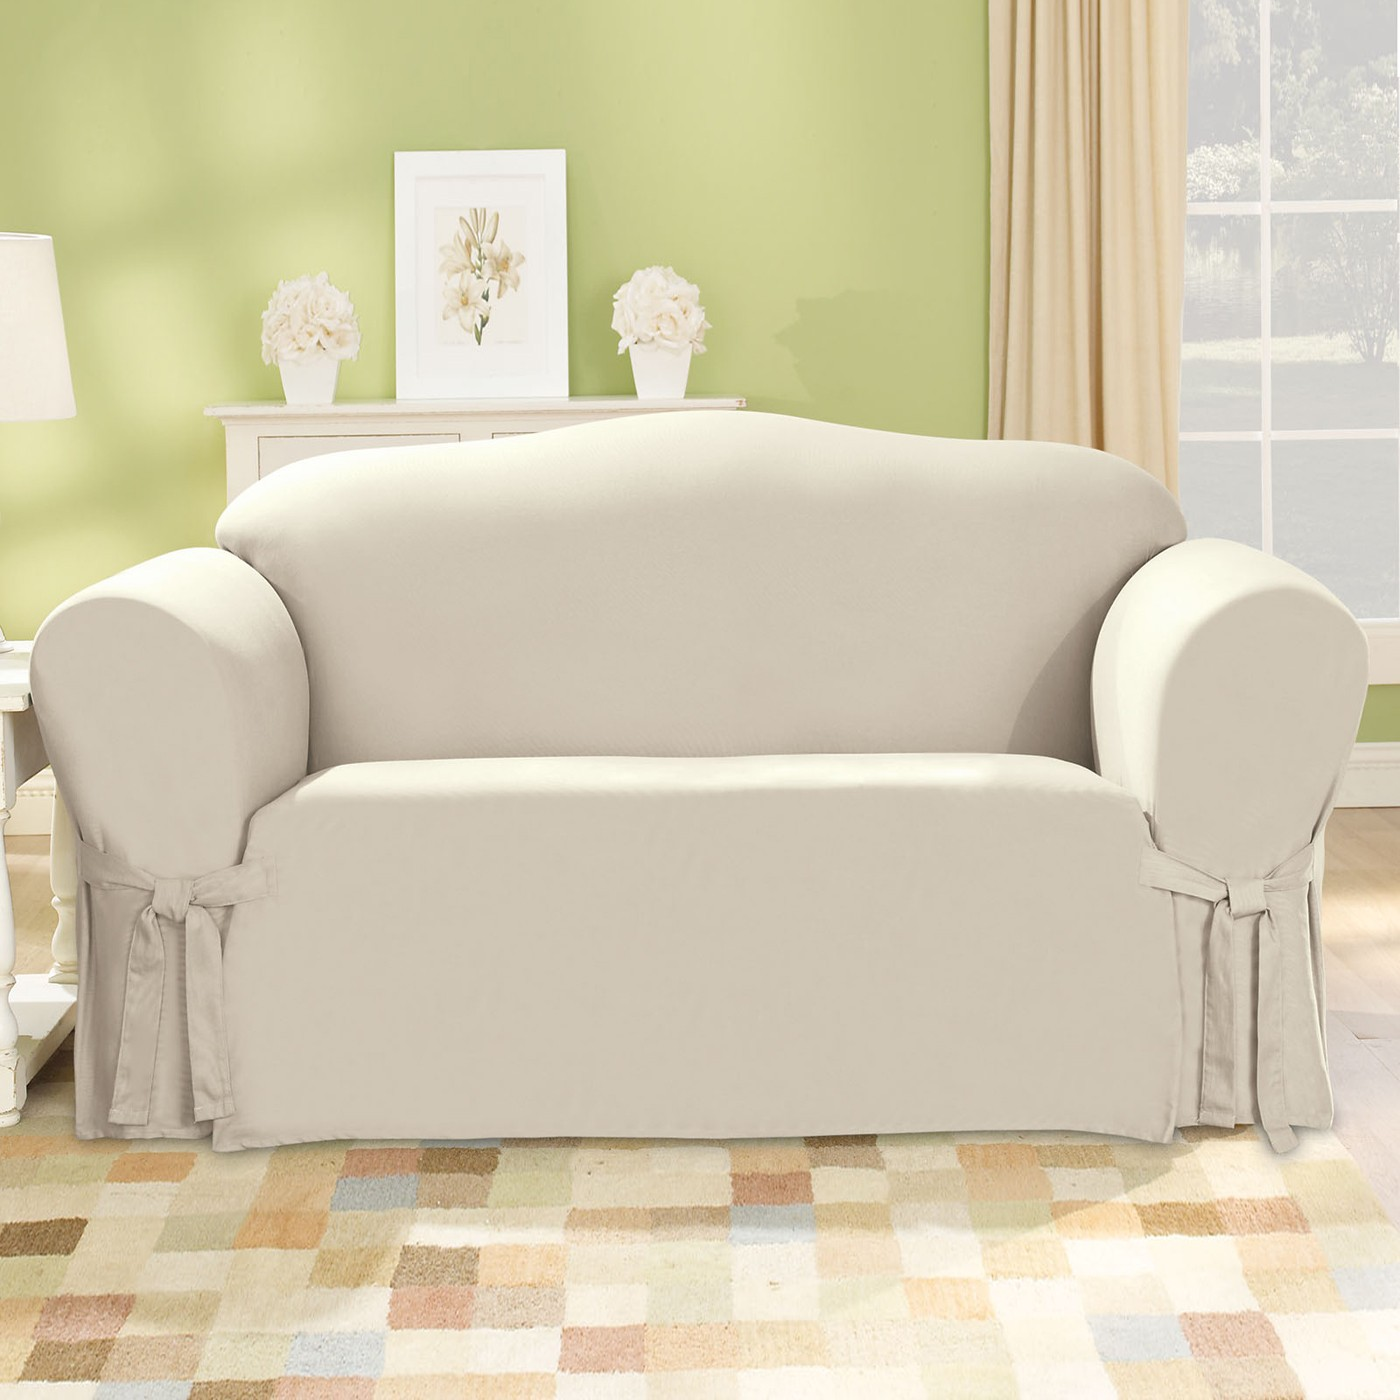 Sofa Covers Bed Bath and Beyond Fantastic Bed Bath Beyond sofa Covers Décor